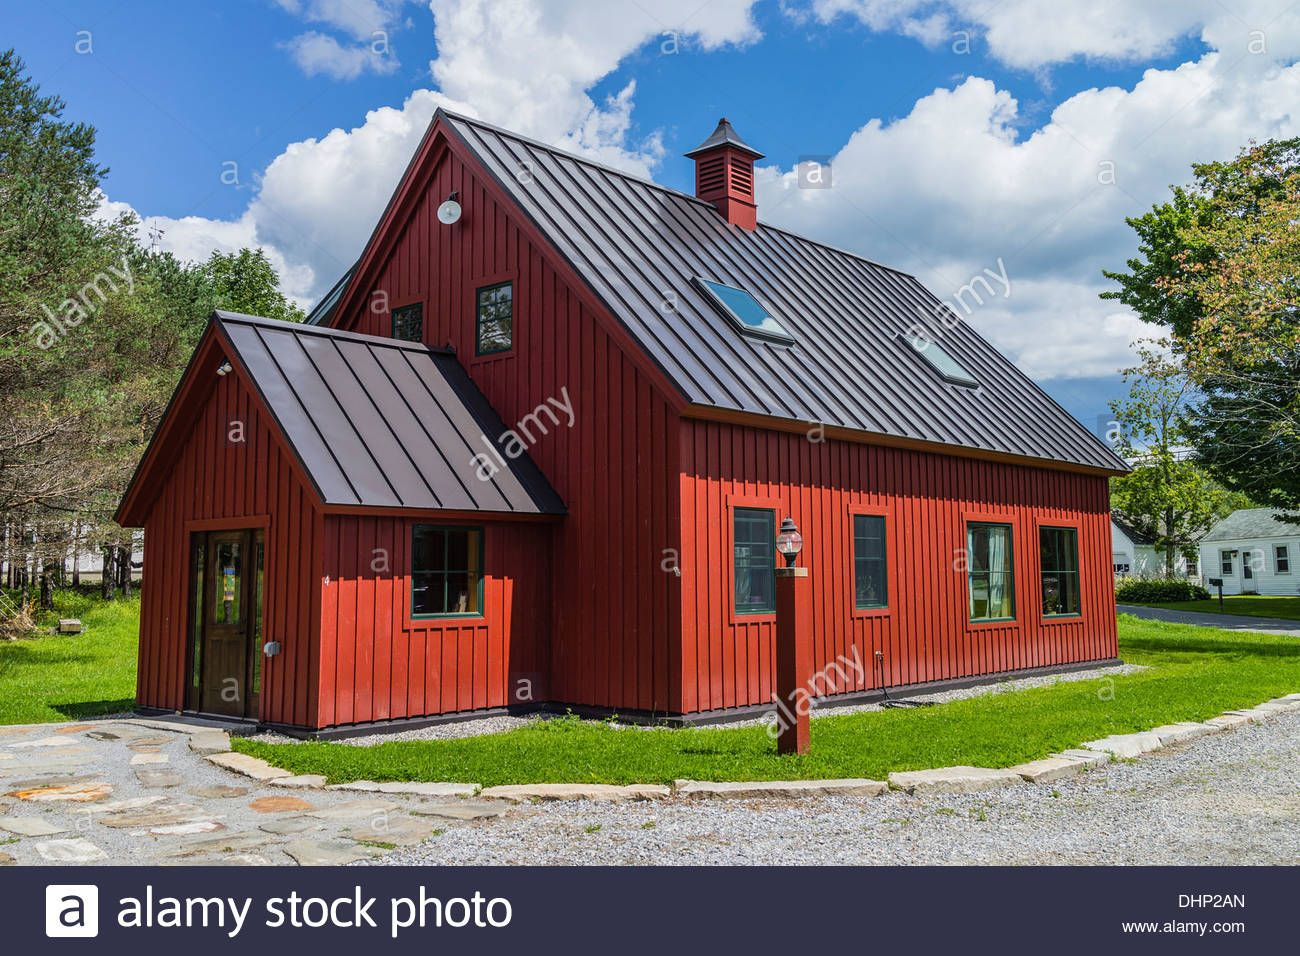 Best Download This Stock Image A Red Wooden Board And Batten 640 x 480